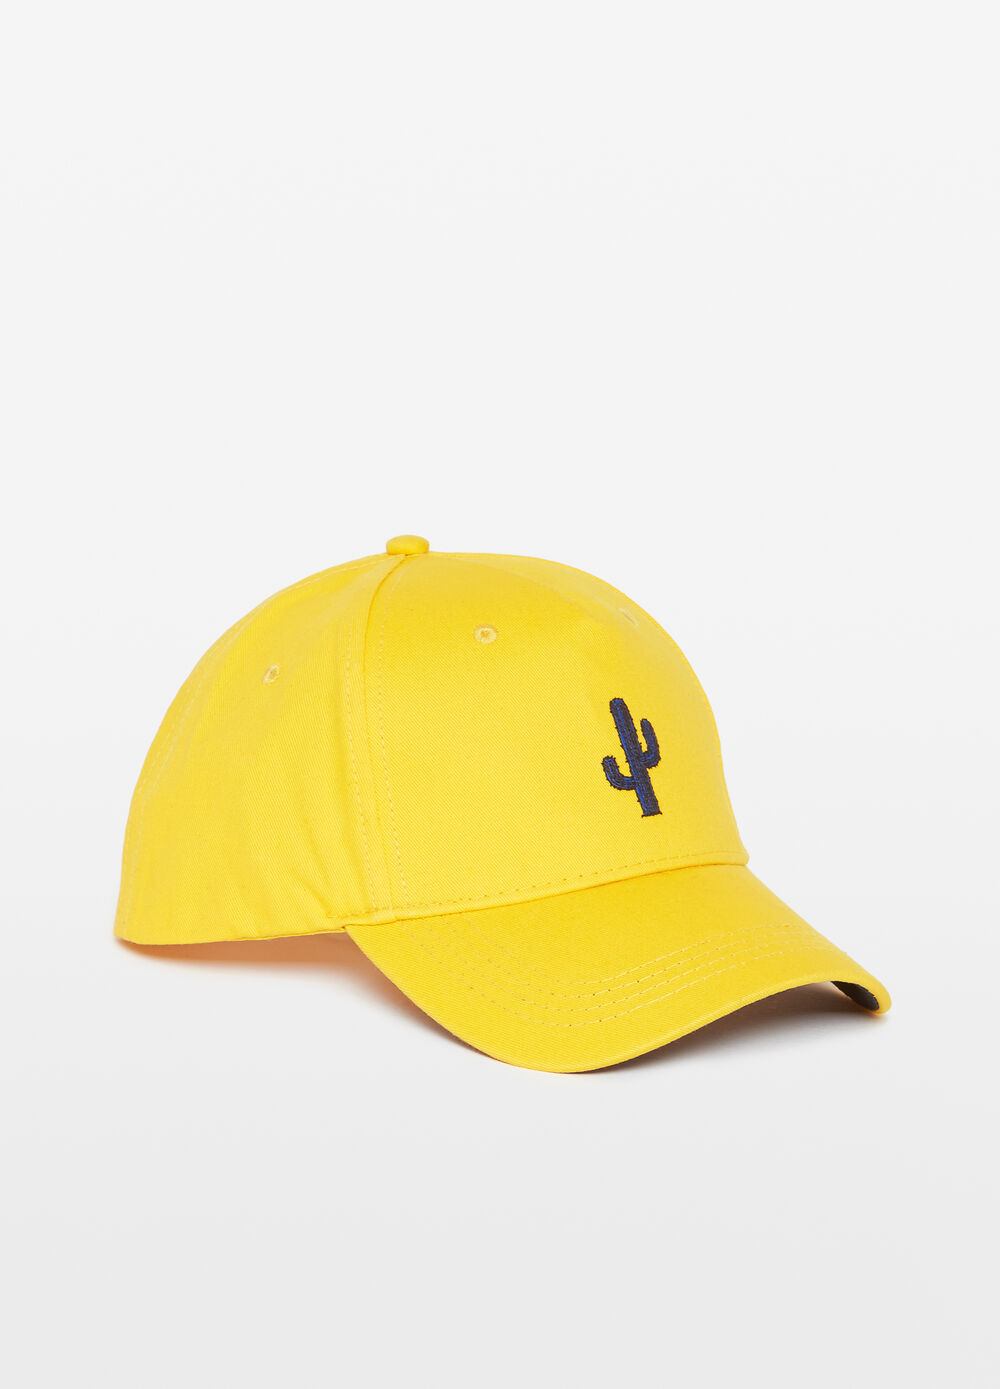 Baseball cap with embroidered cactus